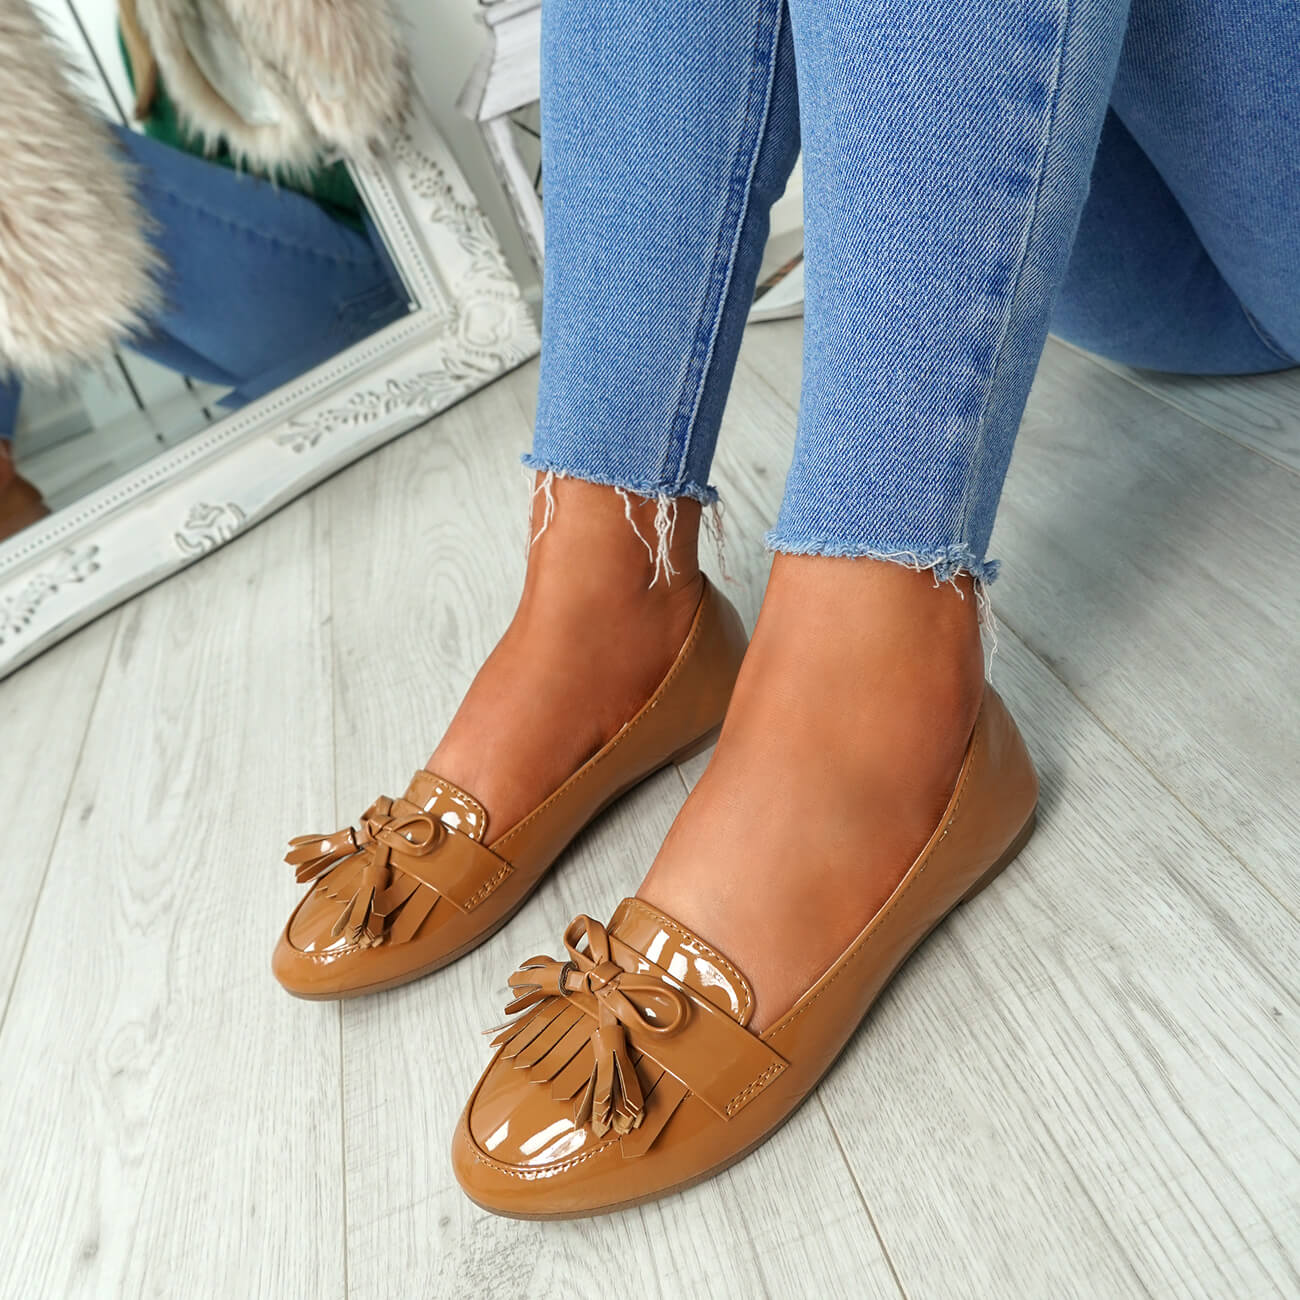 WOMENS-LADIES-FRINGE-BALLERINAS-SLIP-ON-FLAT-DOLLY-PUMPS-CASUAL-SMART-SHOES-SIZE thumbnail 13